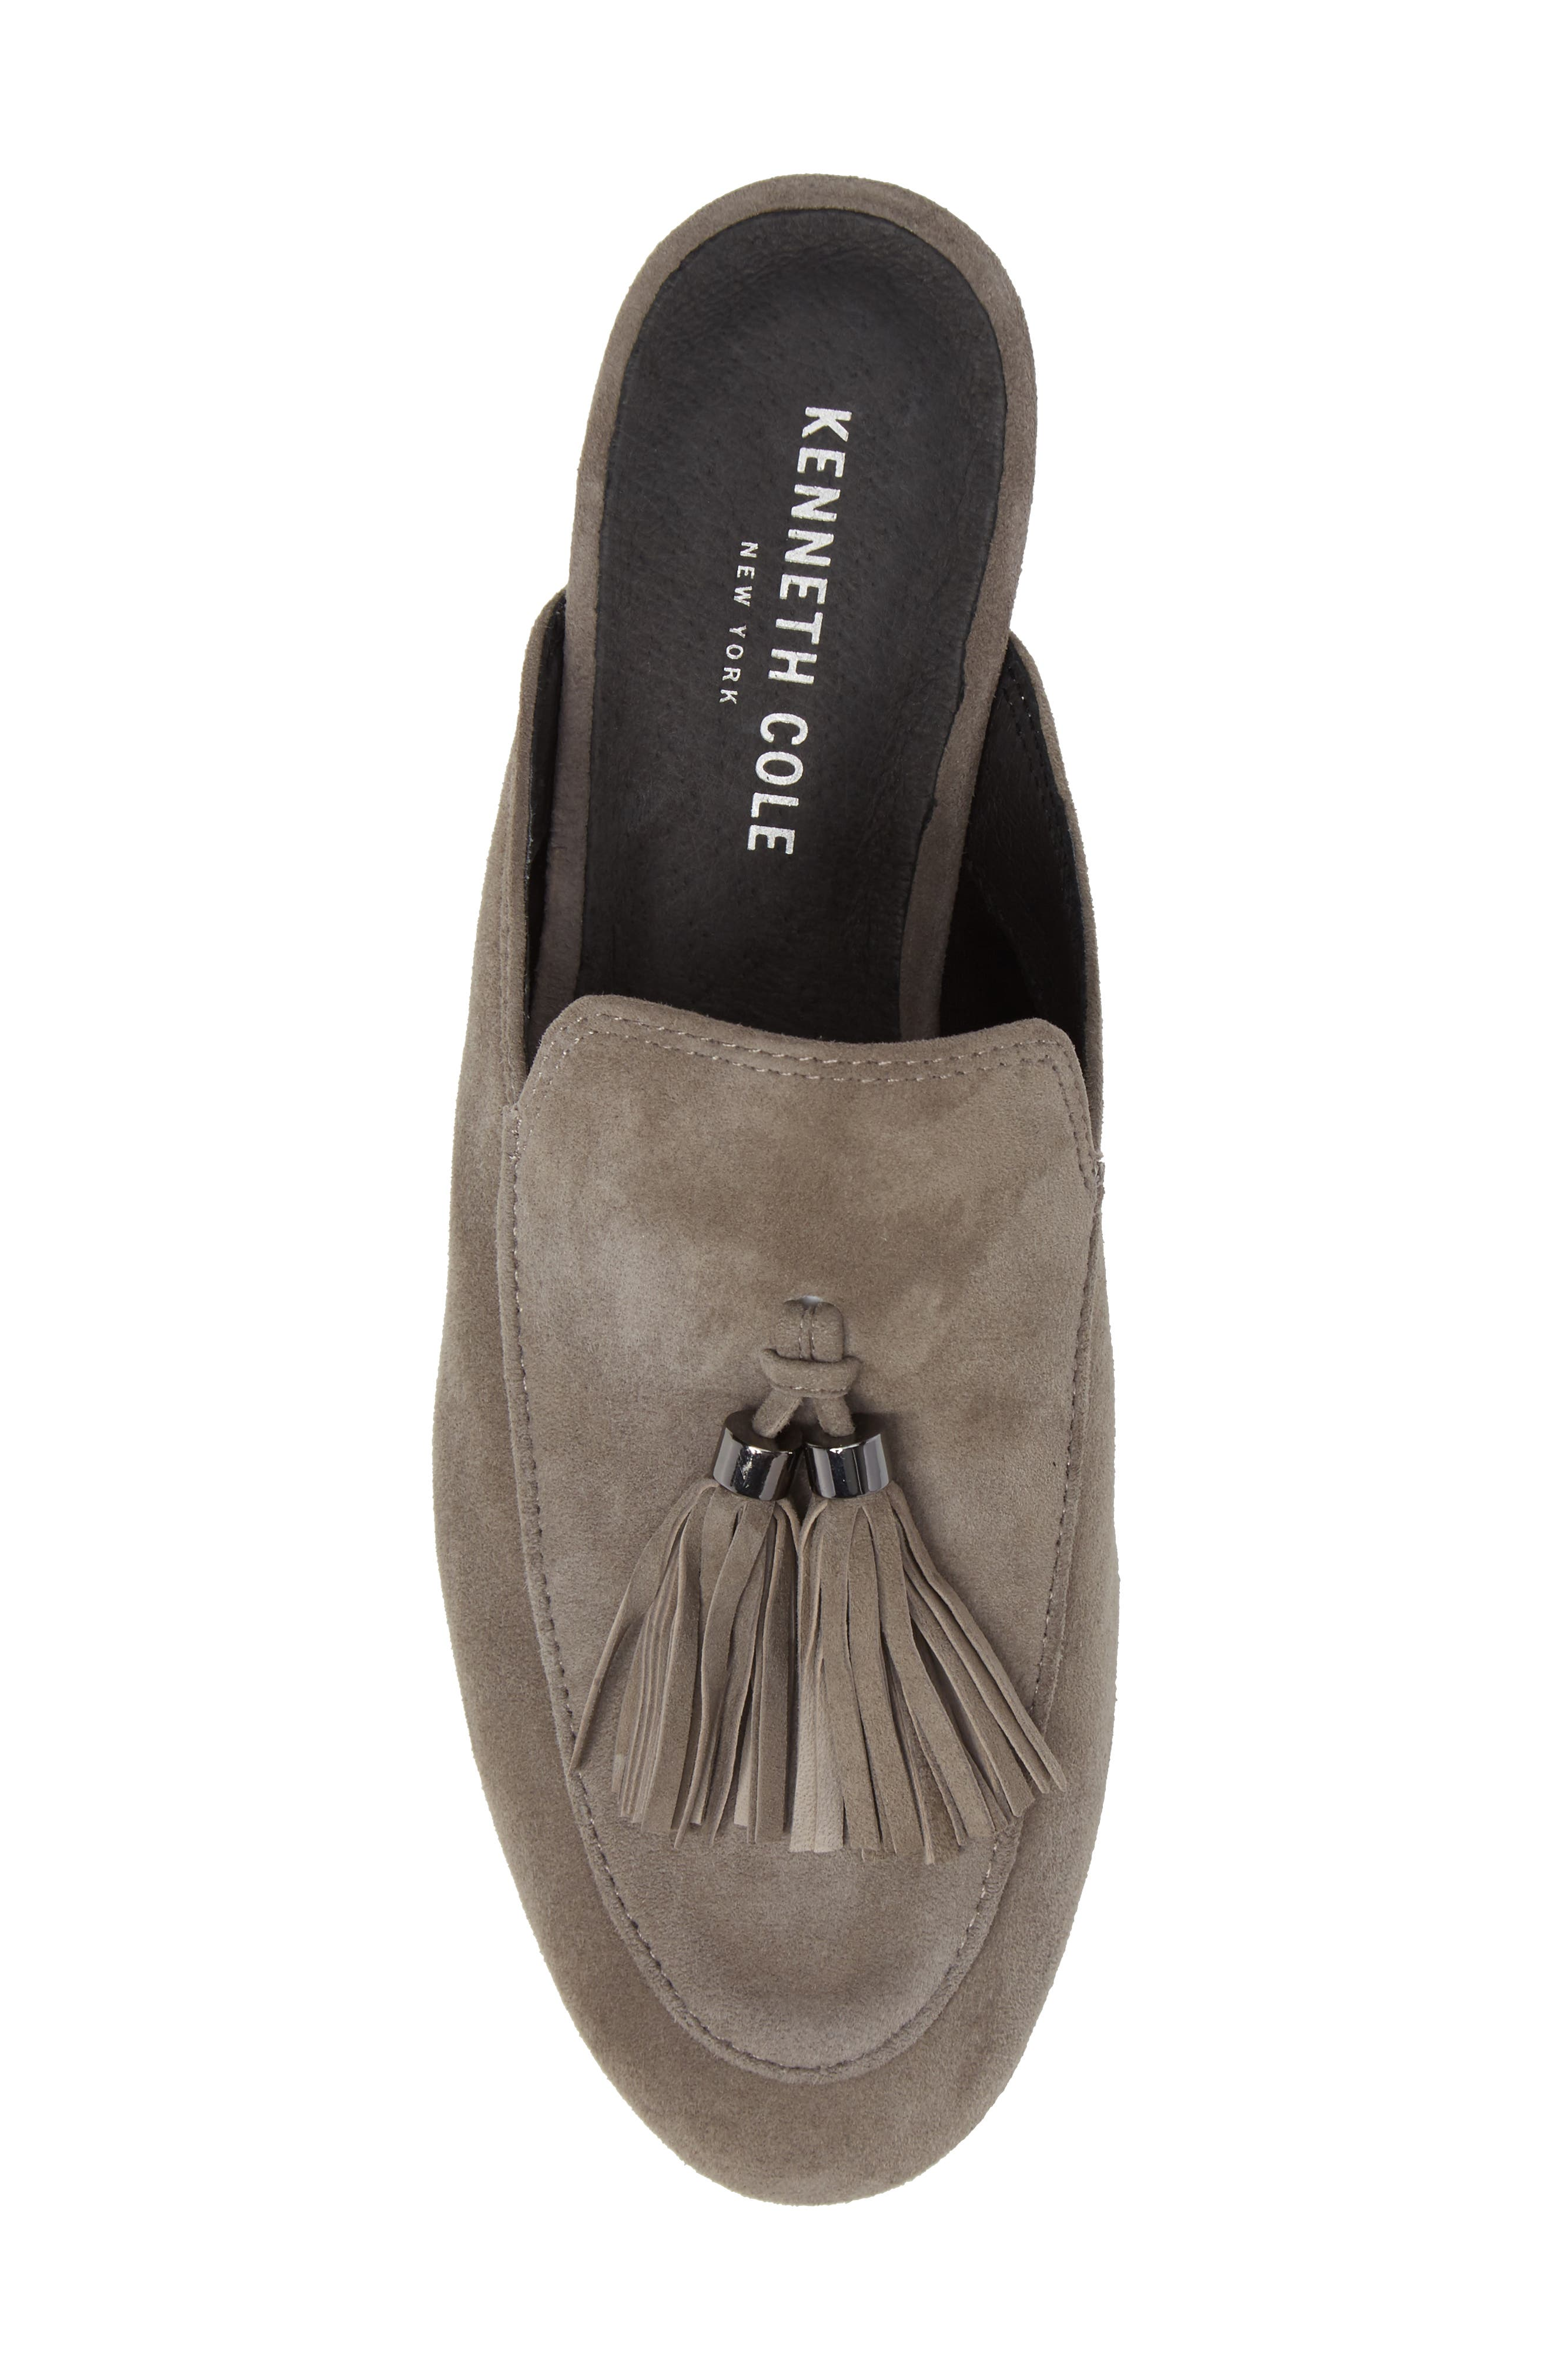 Whinnie Loafer Mule,                             Alternate thumbnail 5, color,                             090